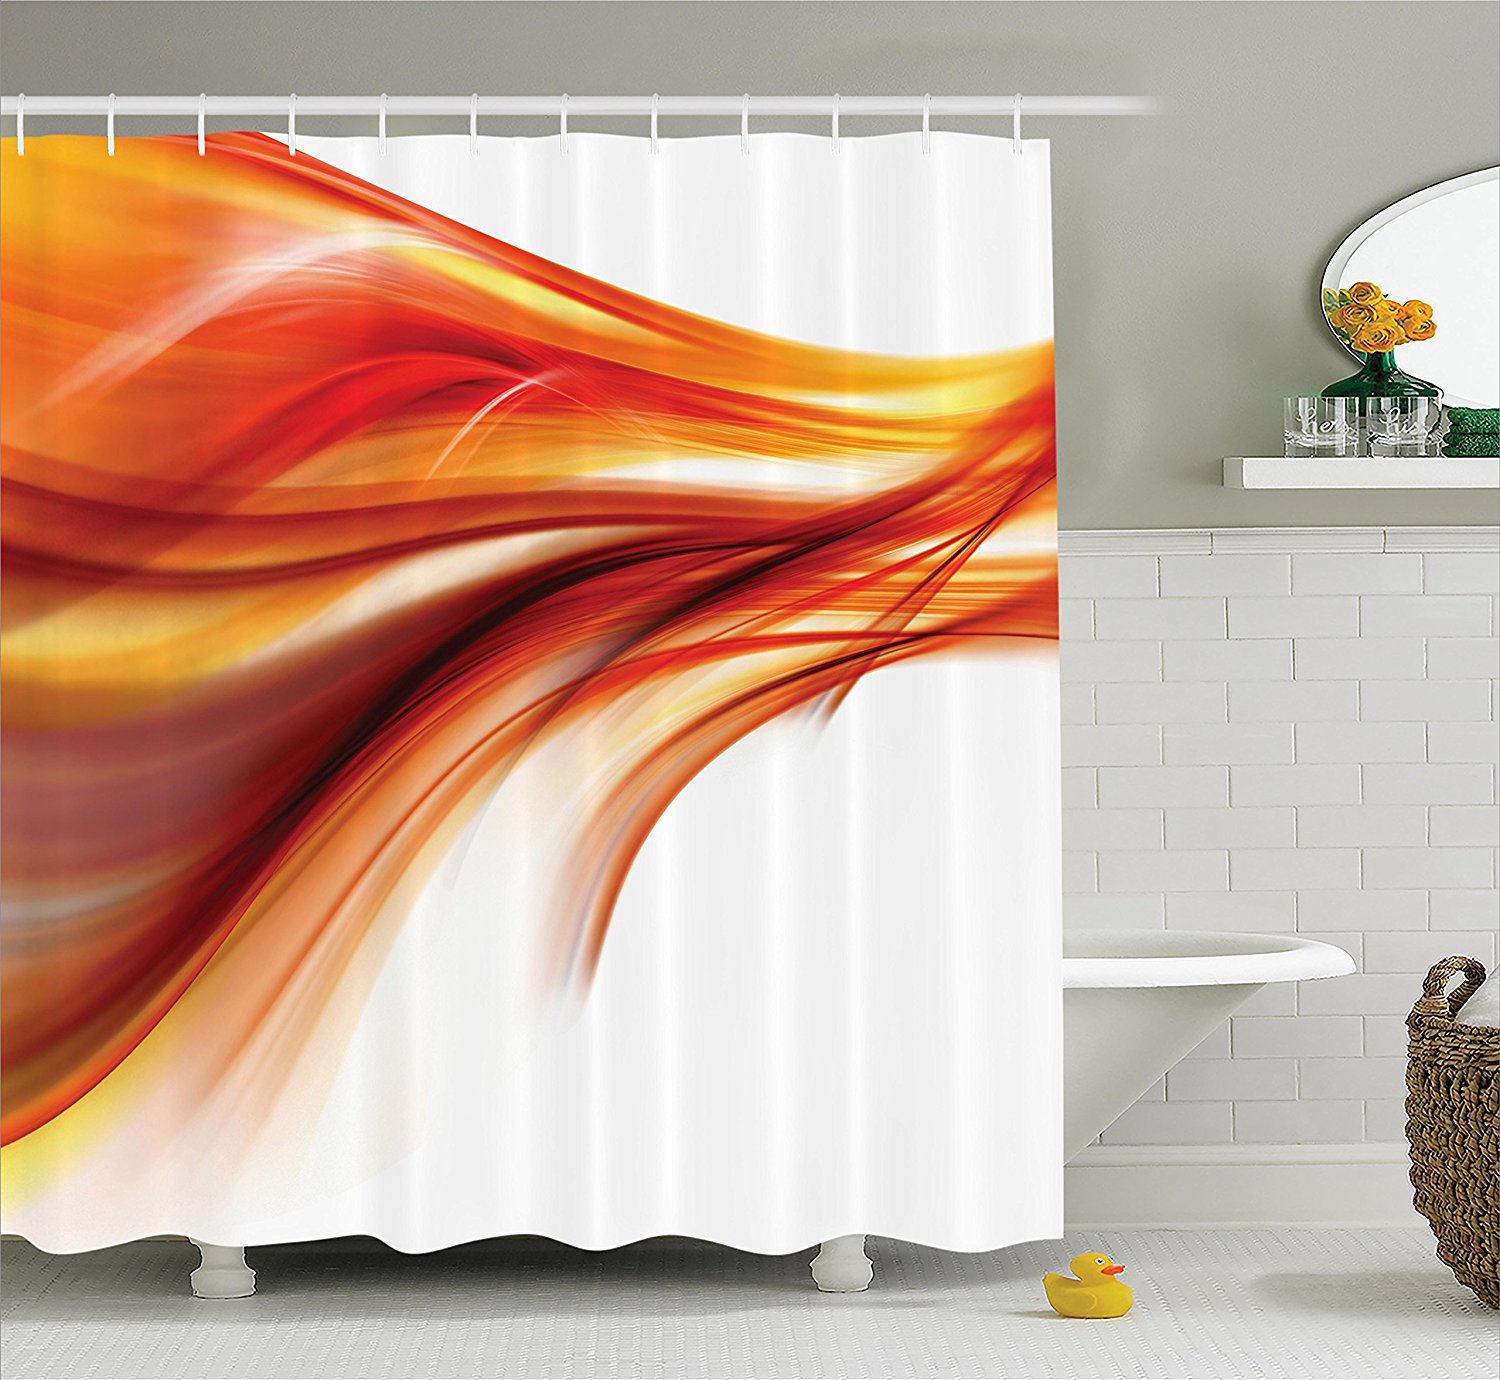 Orange Shower Curtain Set Abstract Home Decor Modern Contemporary Abstract Smooth Lines Art Print Bathroom Prints Bathroom Orange Shower Curtainshower Curtain Set Aliexpress